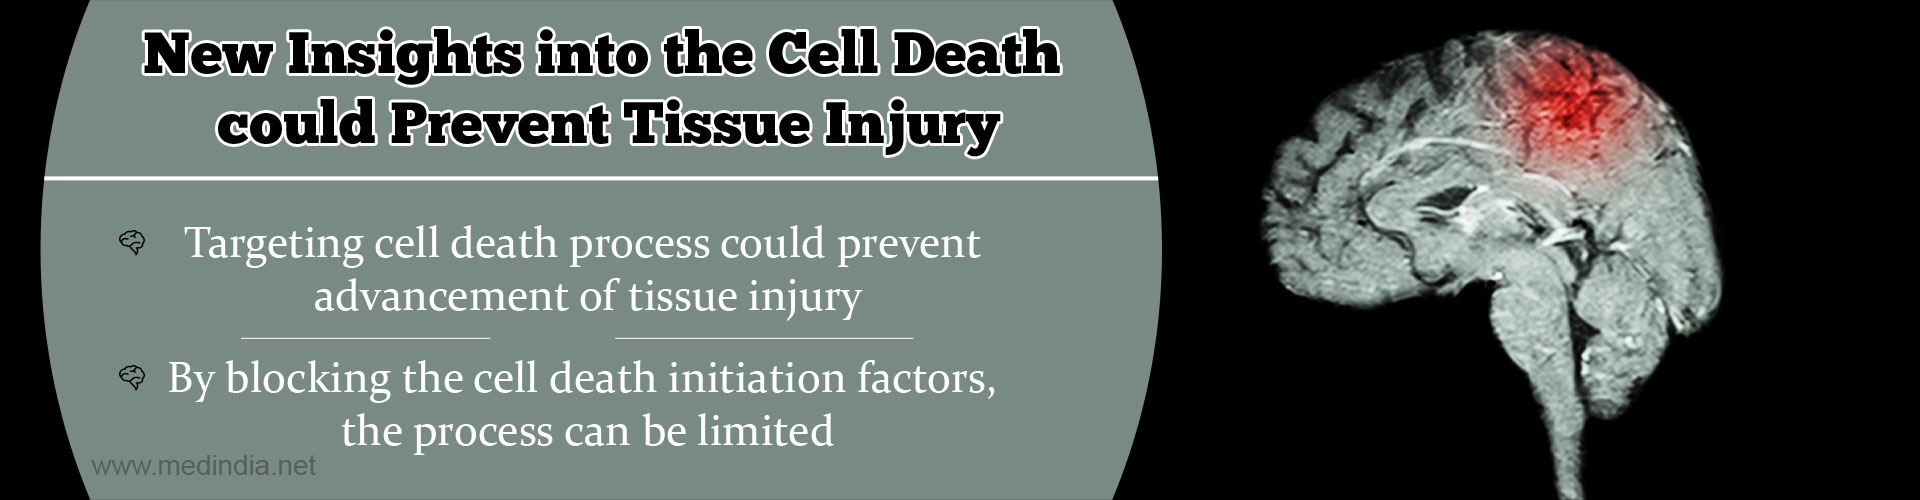 New Insights into the Cell Death could Prevent Tissue Injury